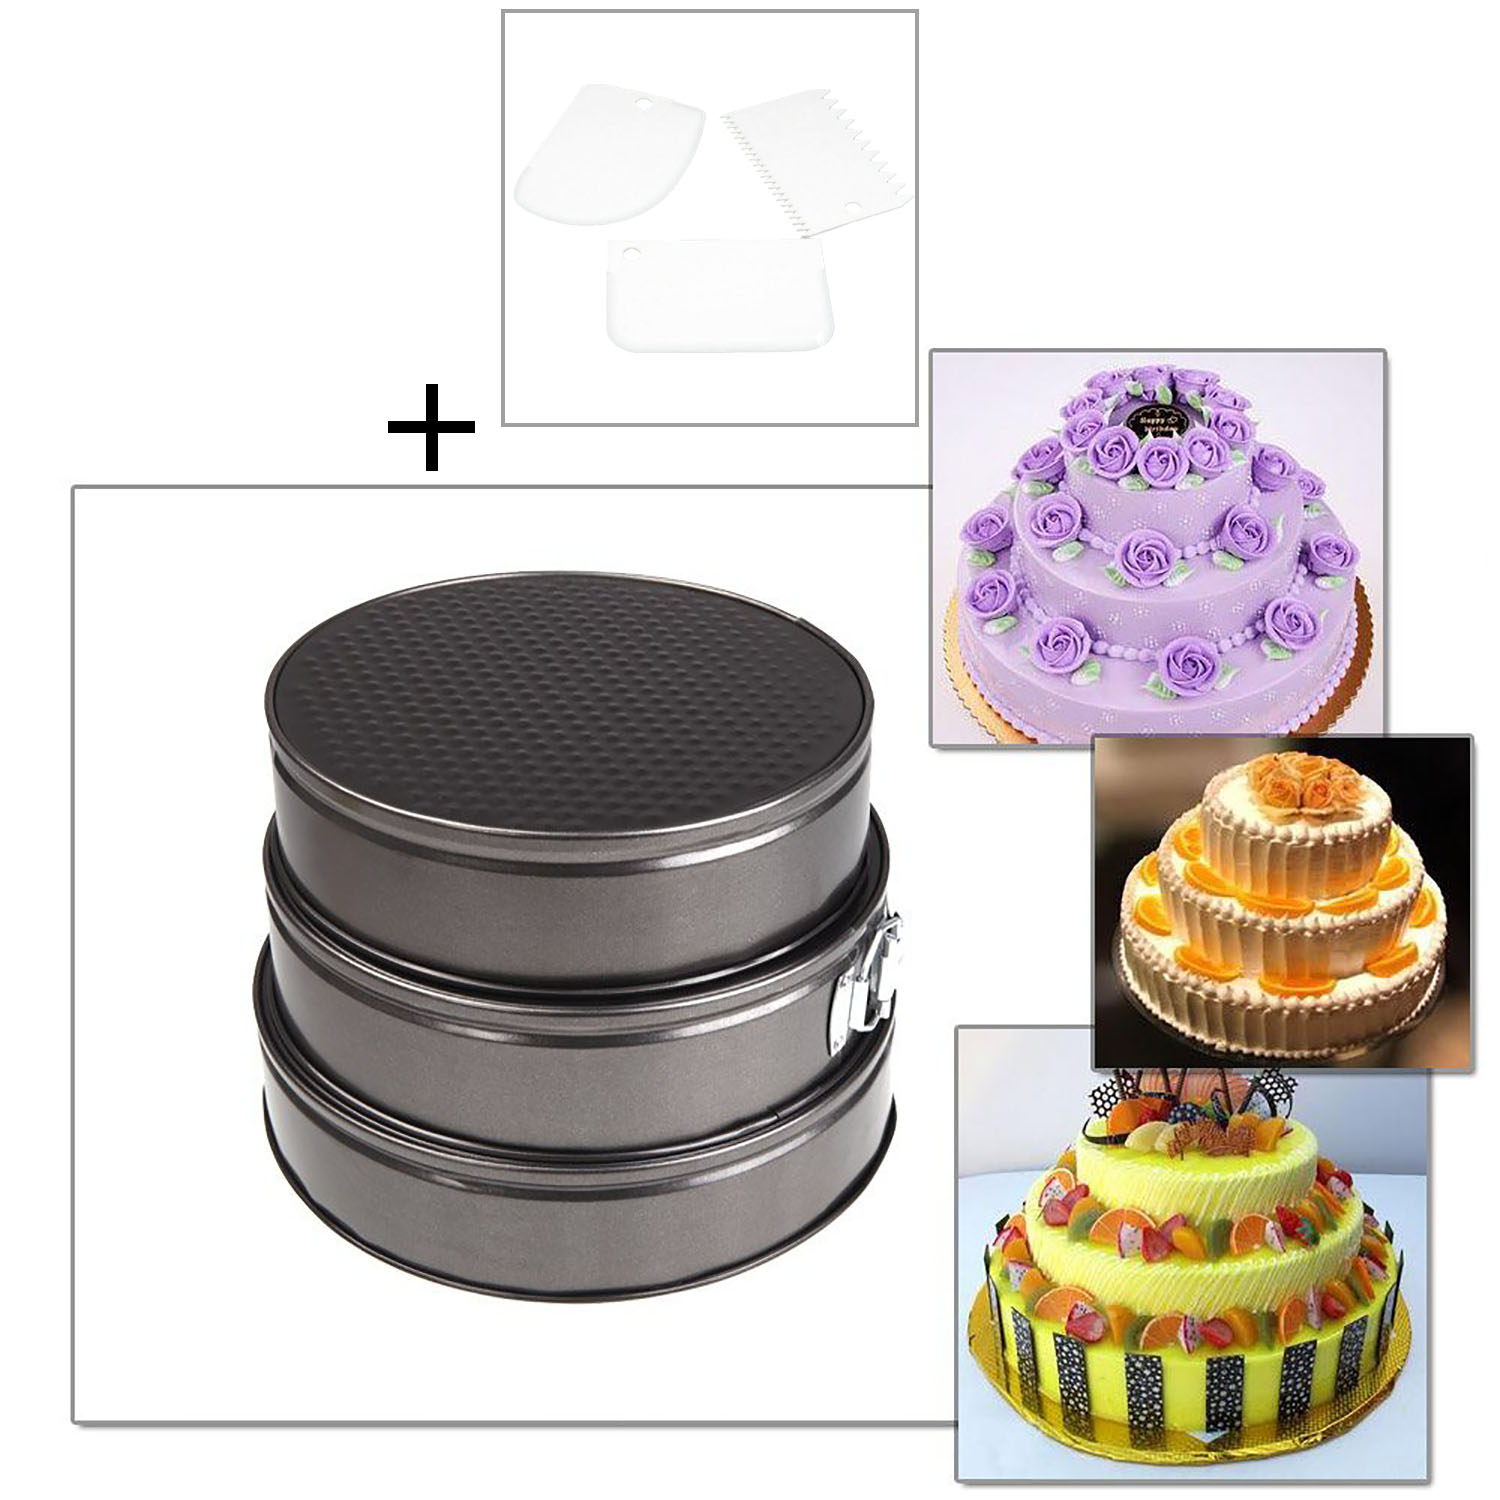 3Pcs Cheesecake Pans set, Round Non-stick Leakproof Baking Pans Cake Pans Springform Pans with 3 Cake Scrapers by Outgeek